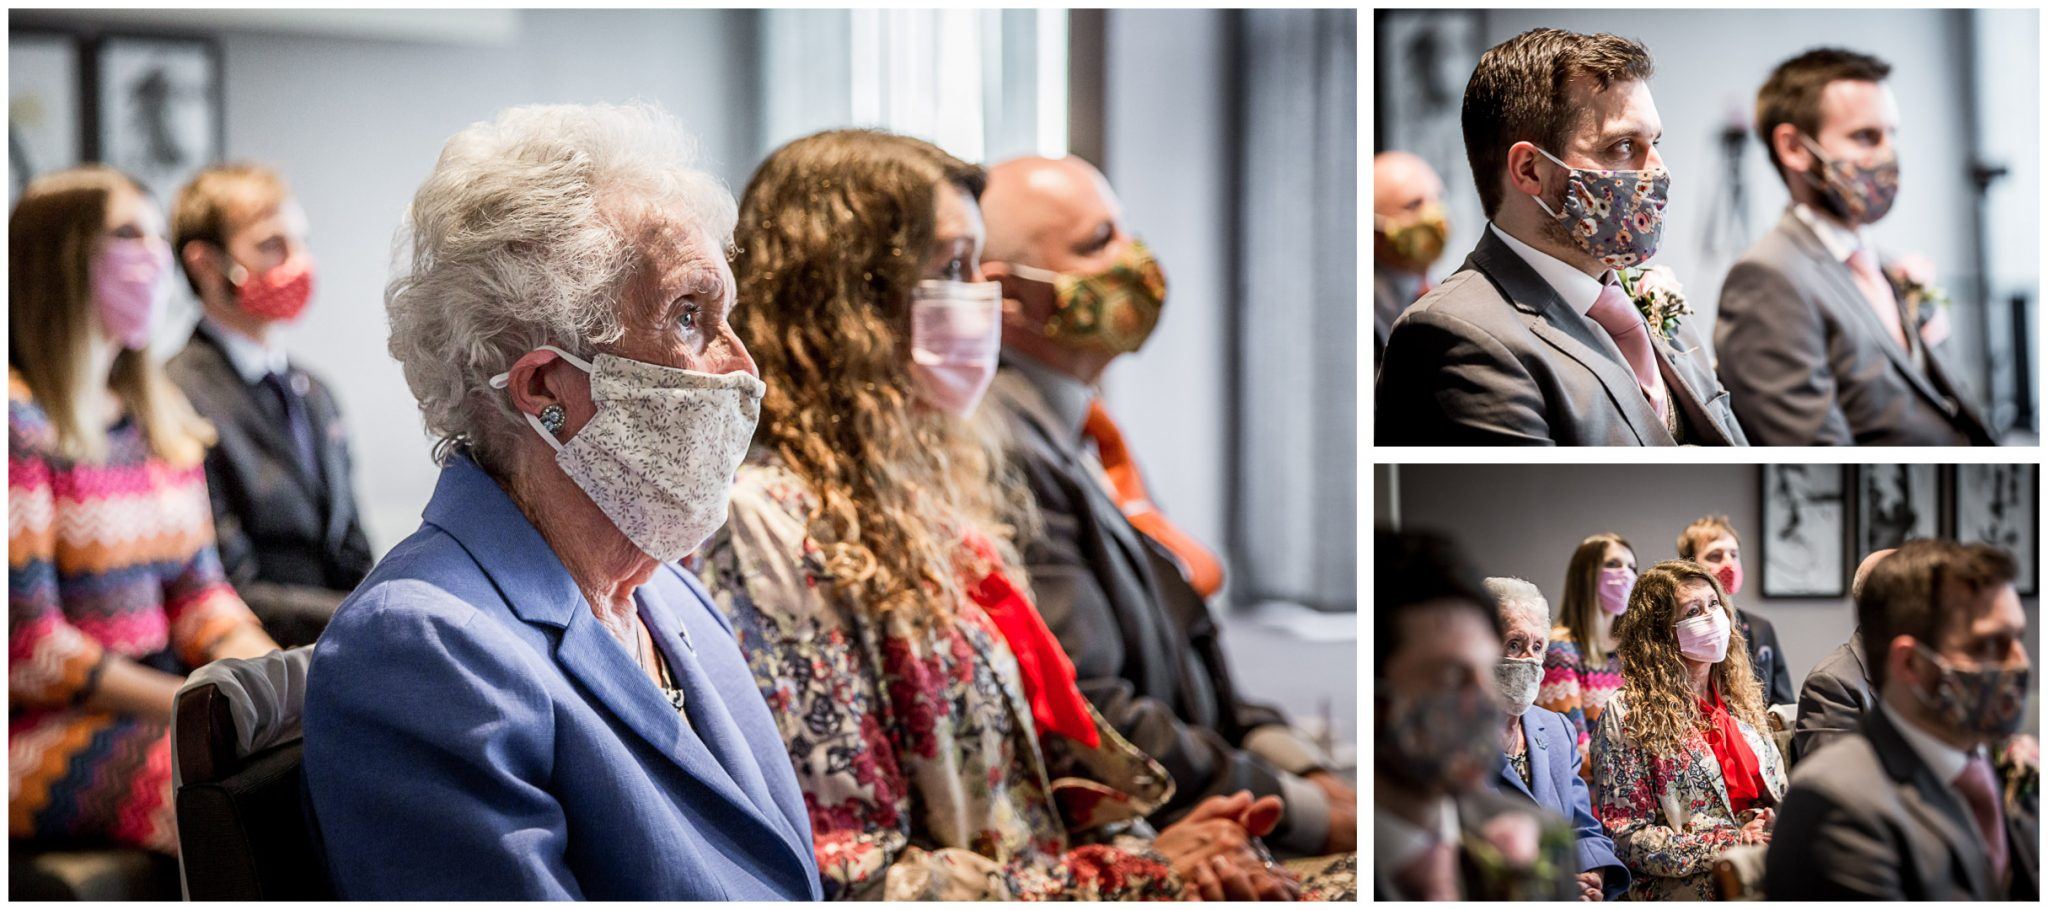 Socially distanced guests watch marriage ceremony wearing masks for covid coronavirus